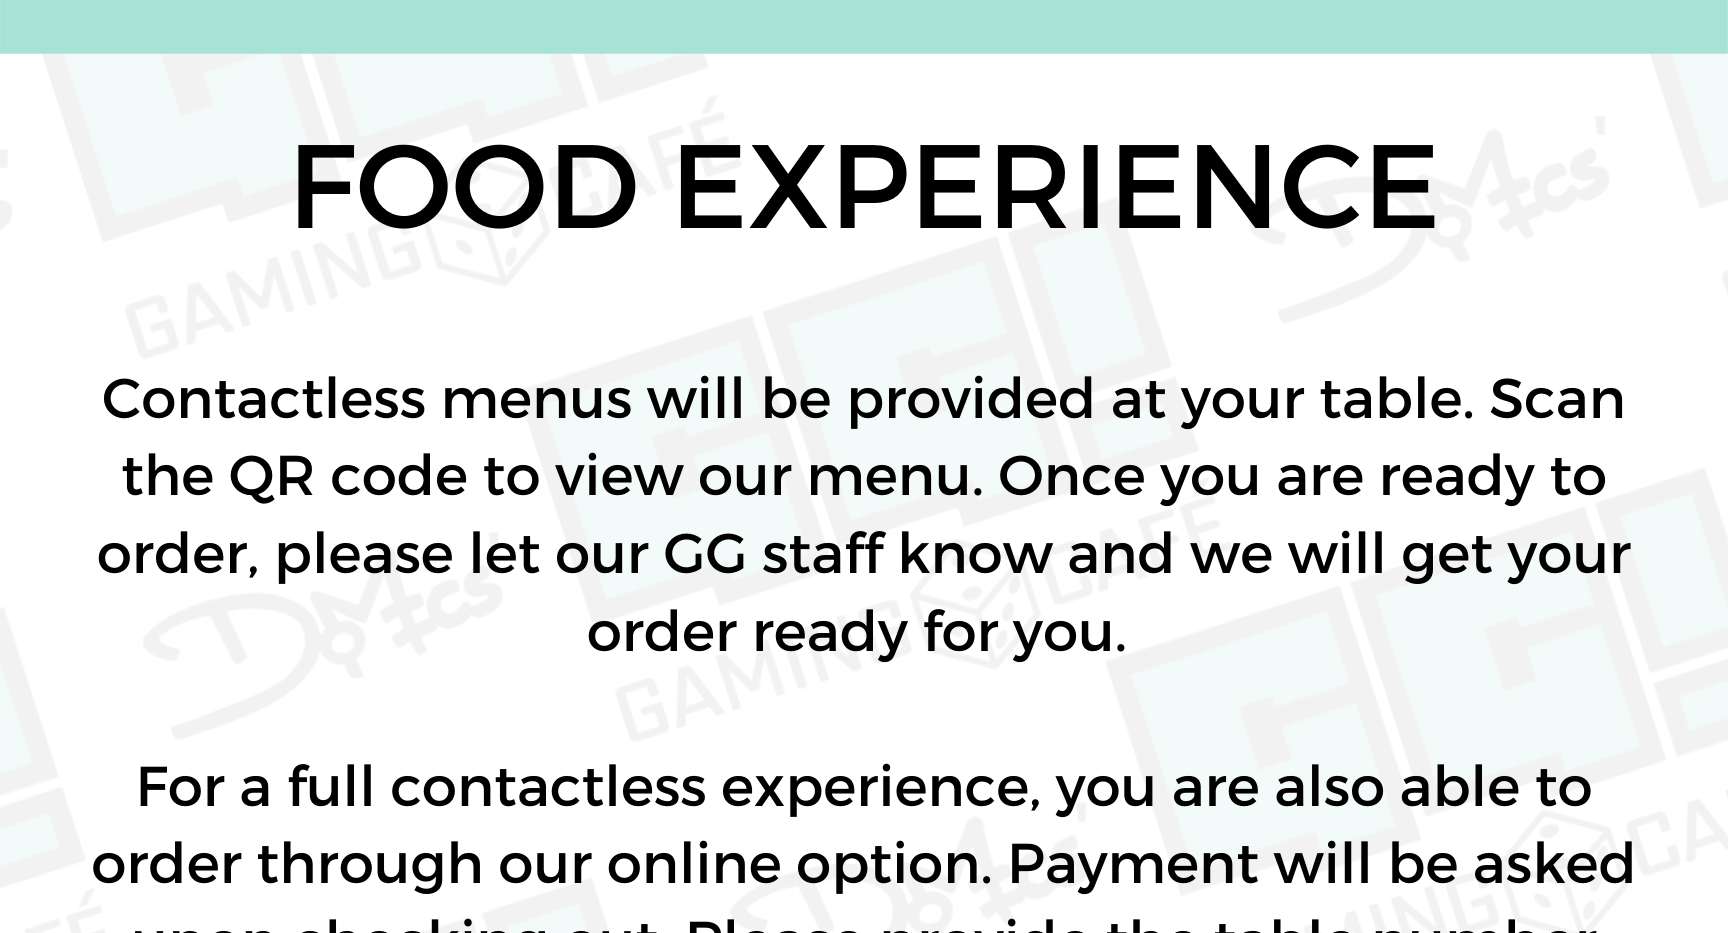 4.Food Experience